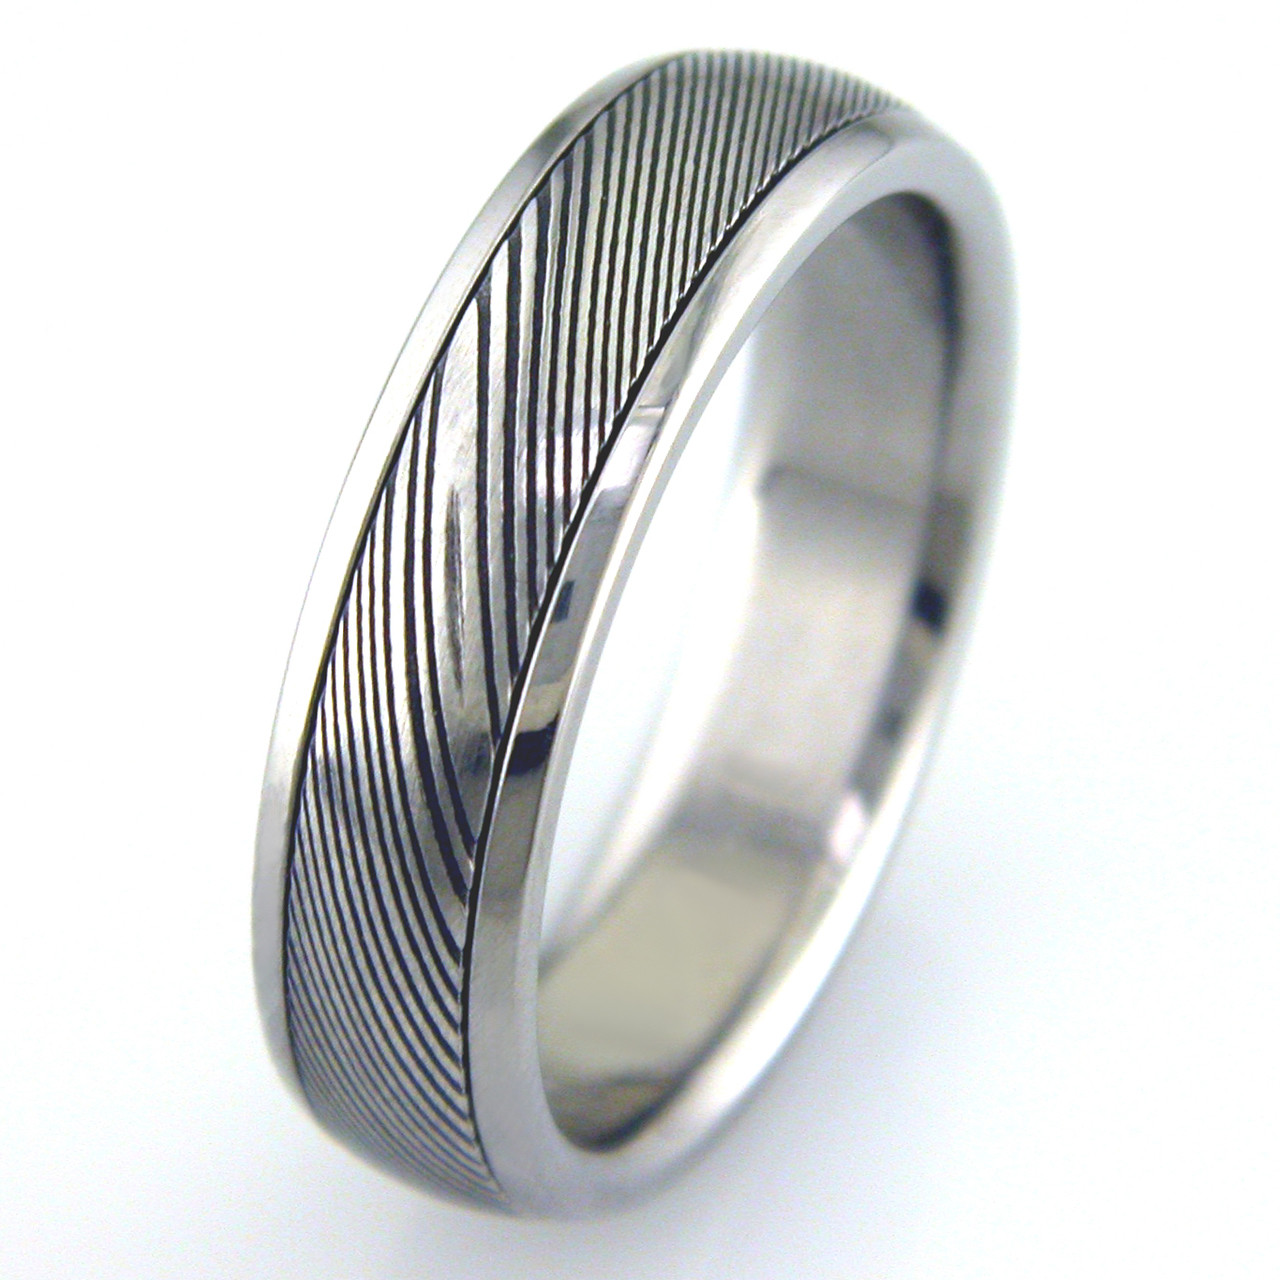 80719ab3a1dcd Men's Titanium Ring with Damascus Steel Inlay